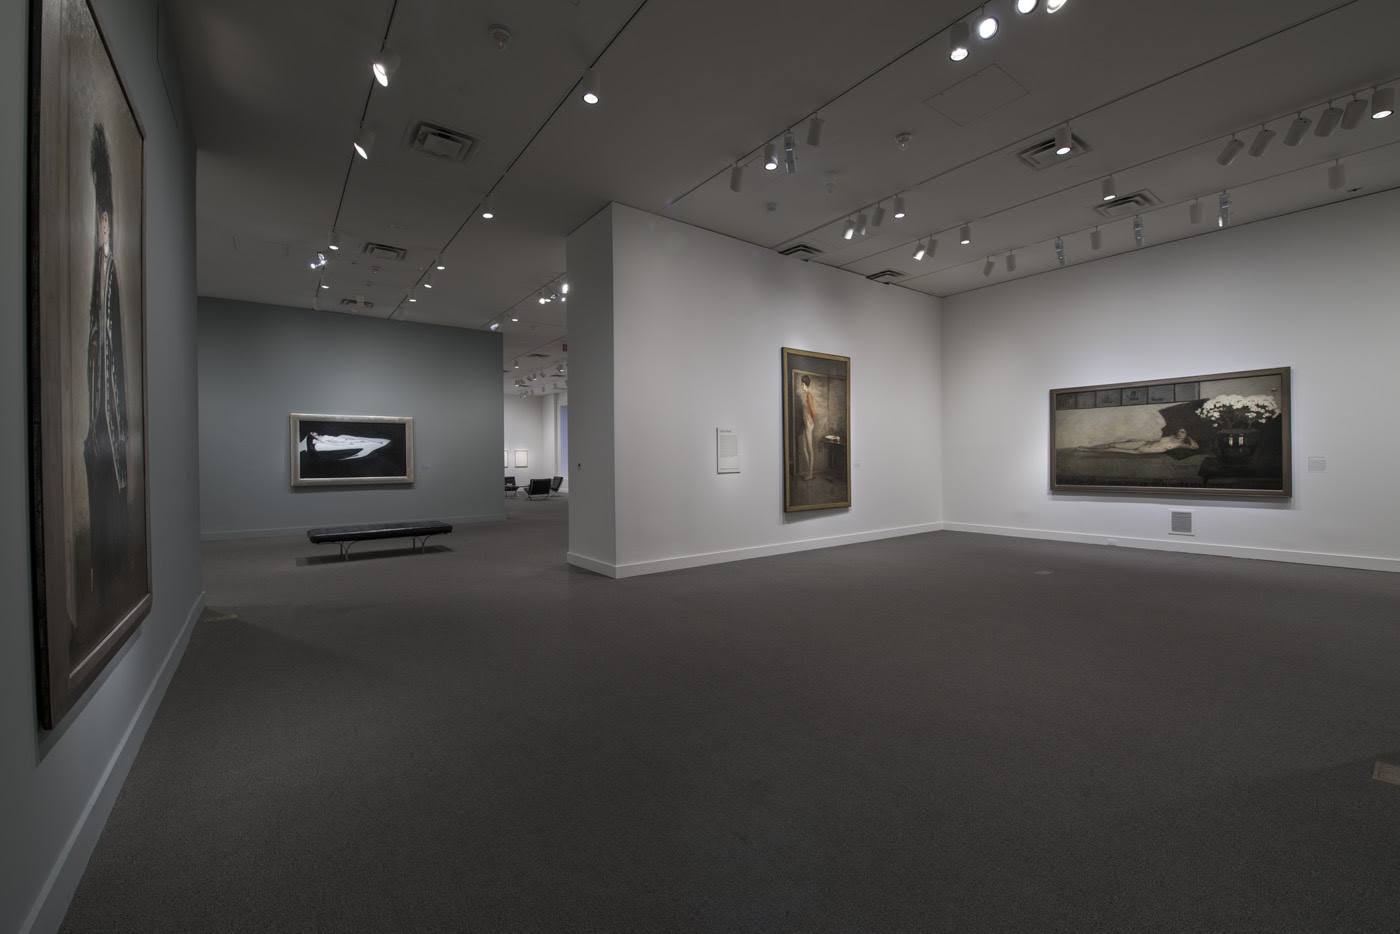 Installation view, 'The Art of Romaine Brooks' at the Smithsonian American Art Museum (image courtesy the Smithsonian American Art Museum) (click to enlarge)